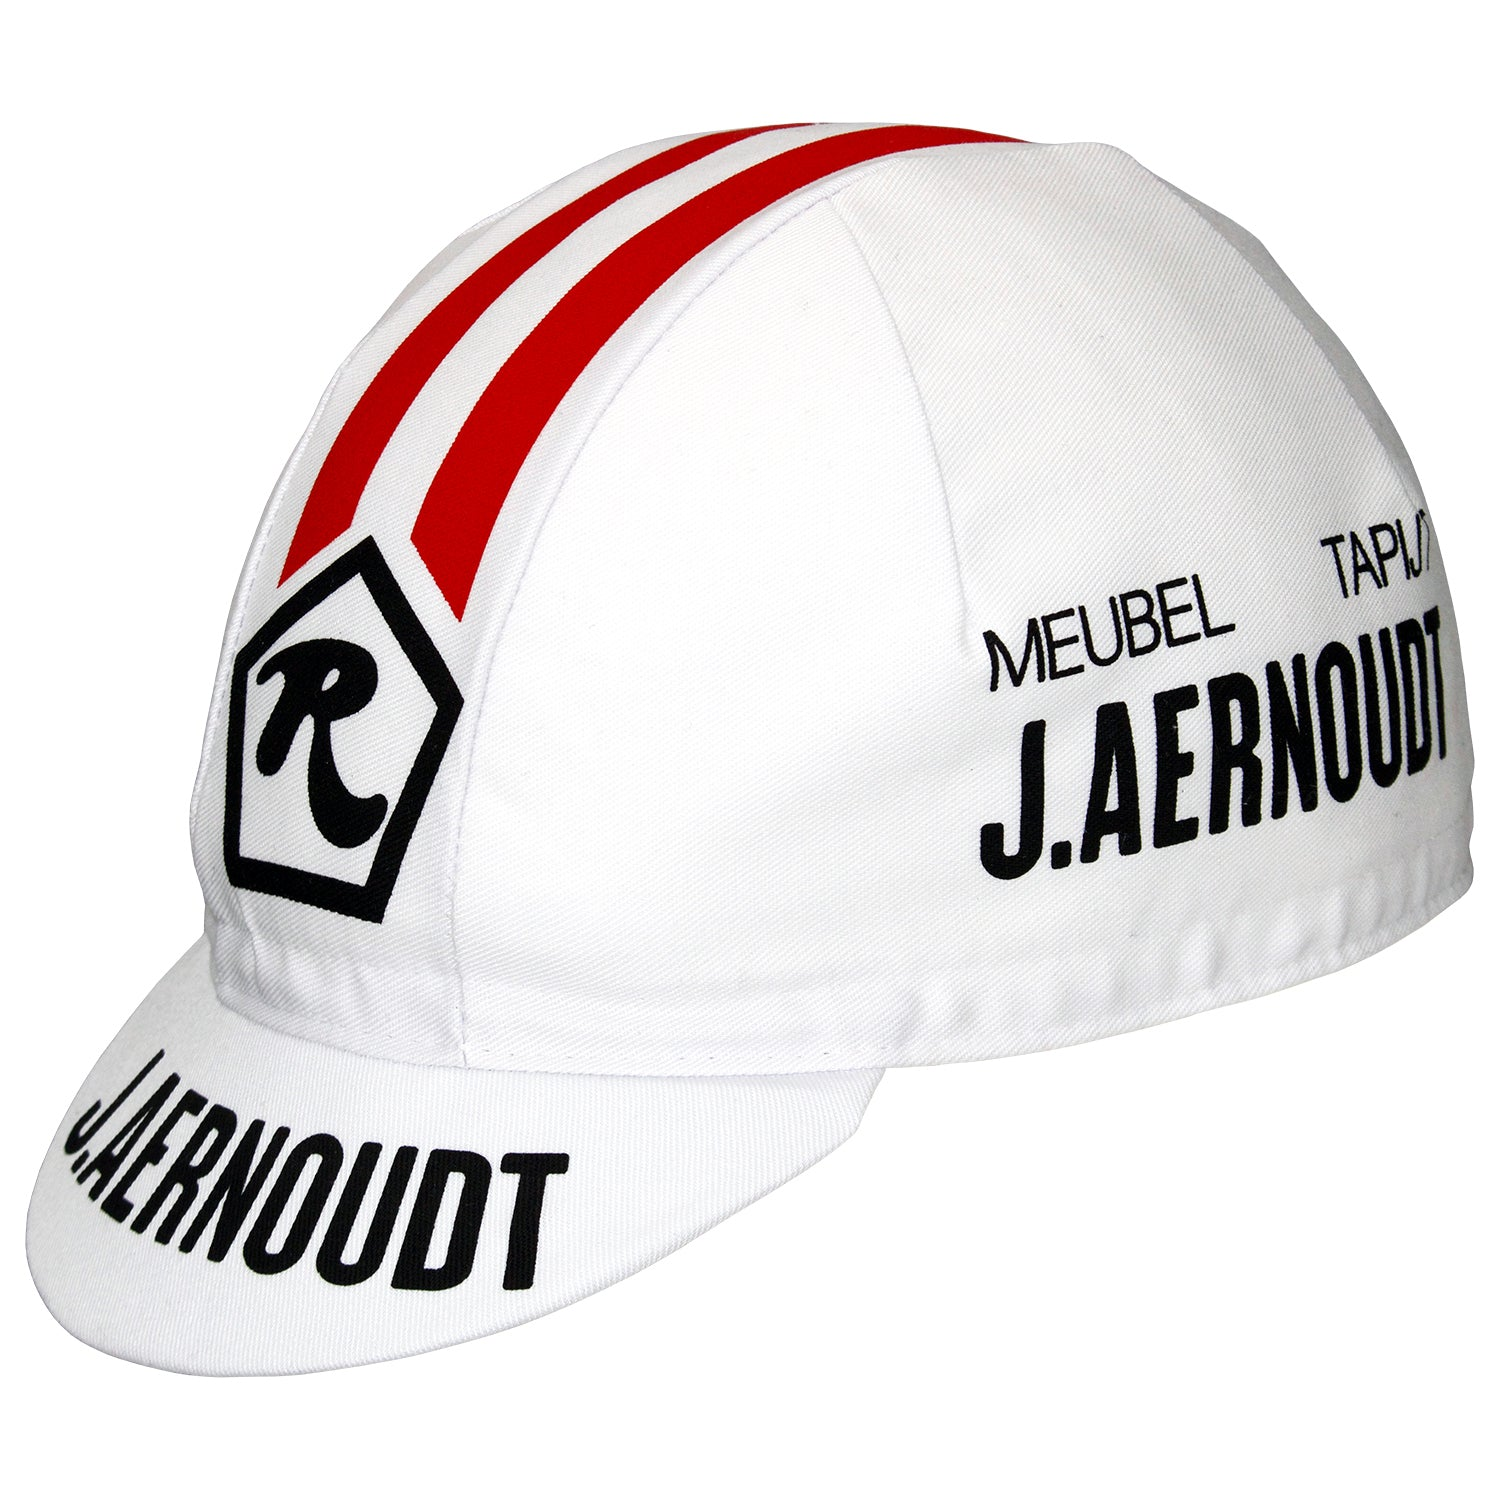 Jacky Aernoudt Meubel Rossin Retro Cotton Cycling Cap | Headwear